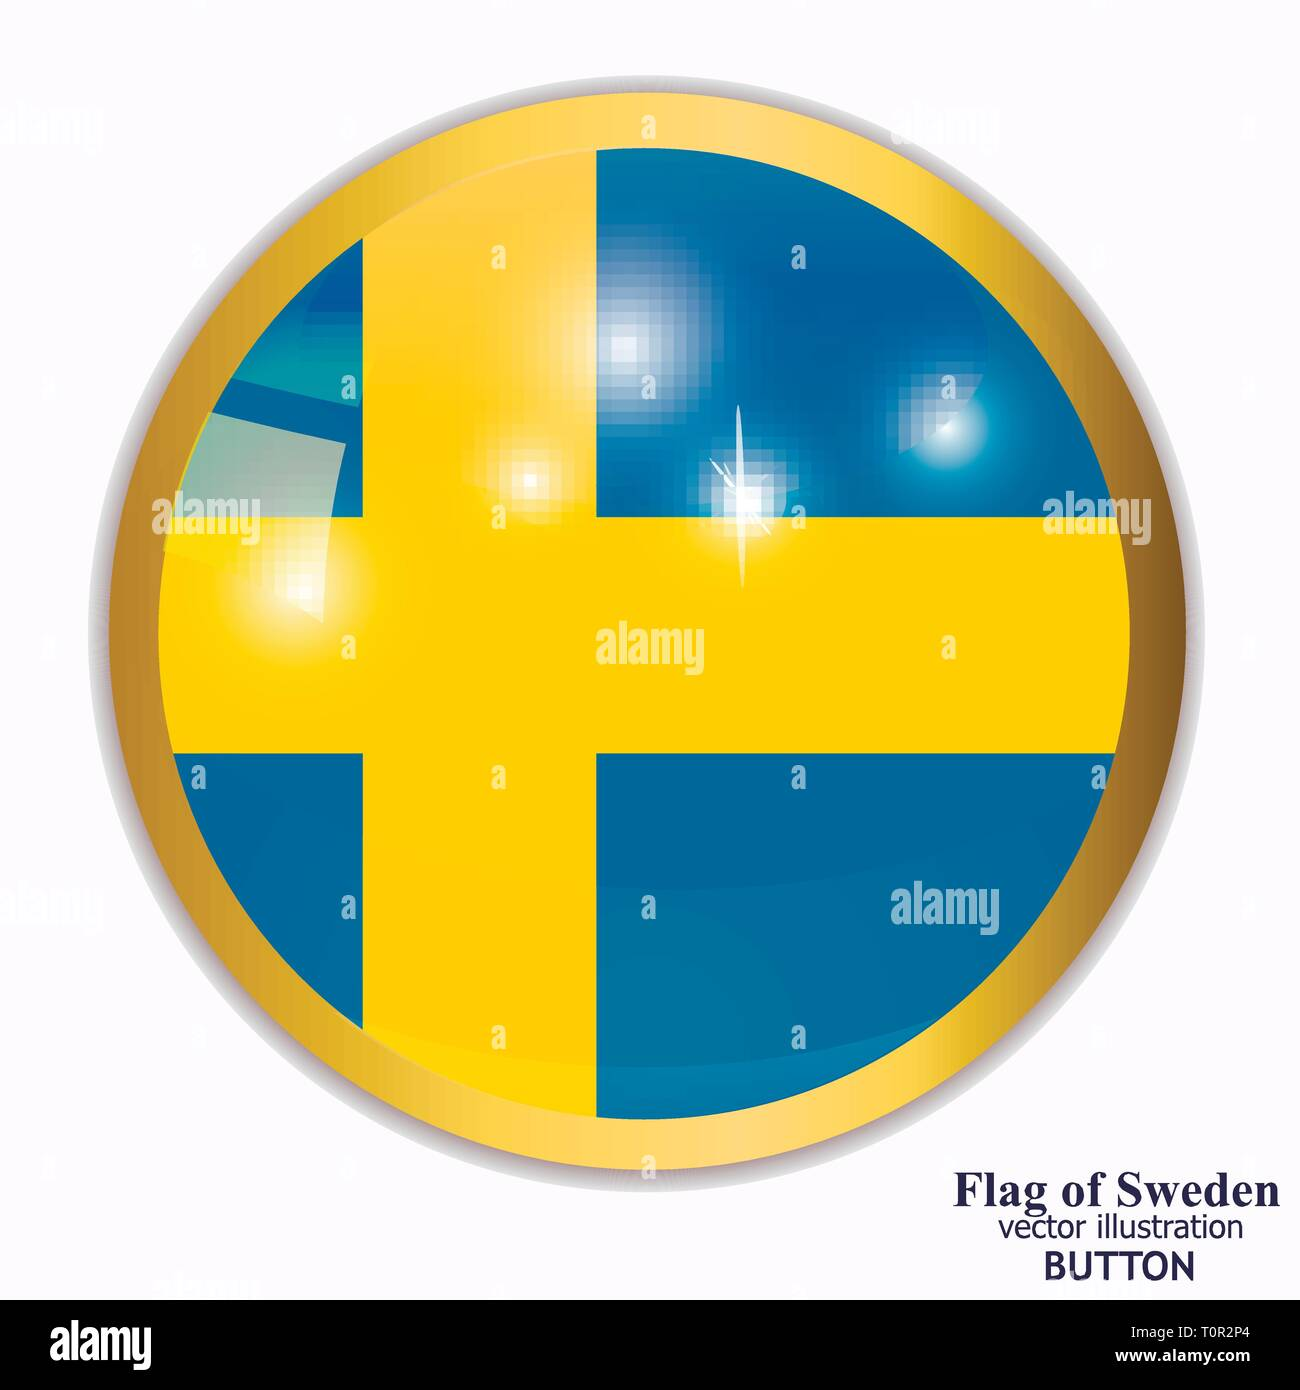 Bright button with flag of Sweden. Happy Sweden day background. Bright illustration with flag. - Stock Image